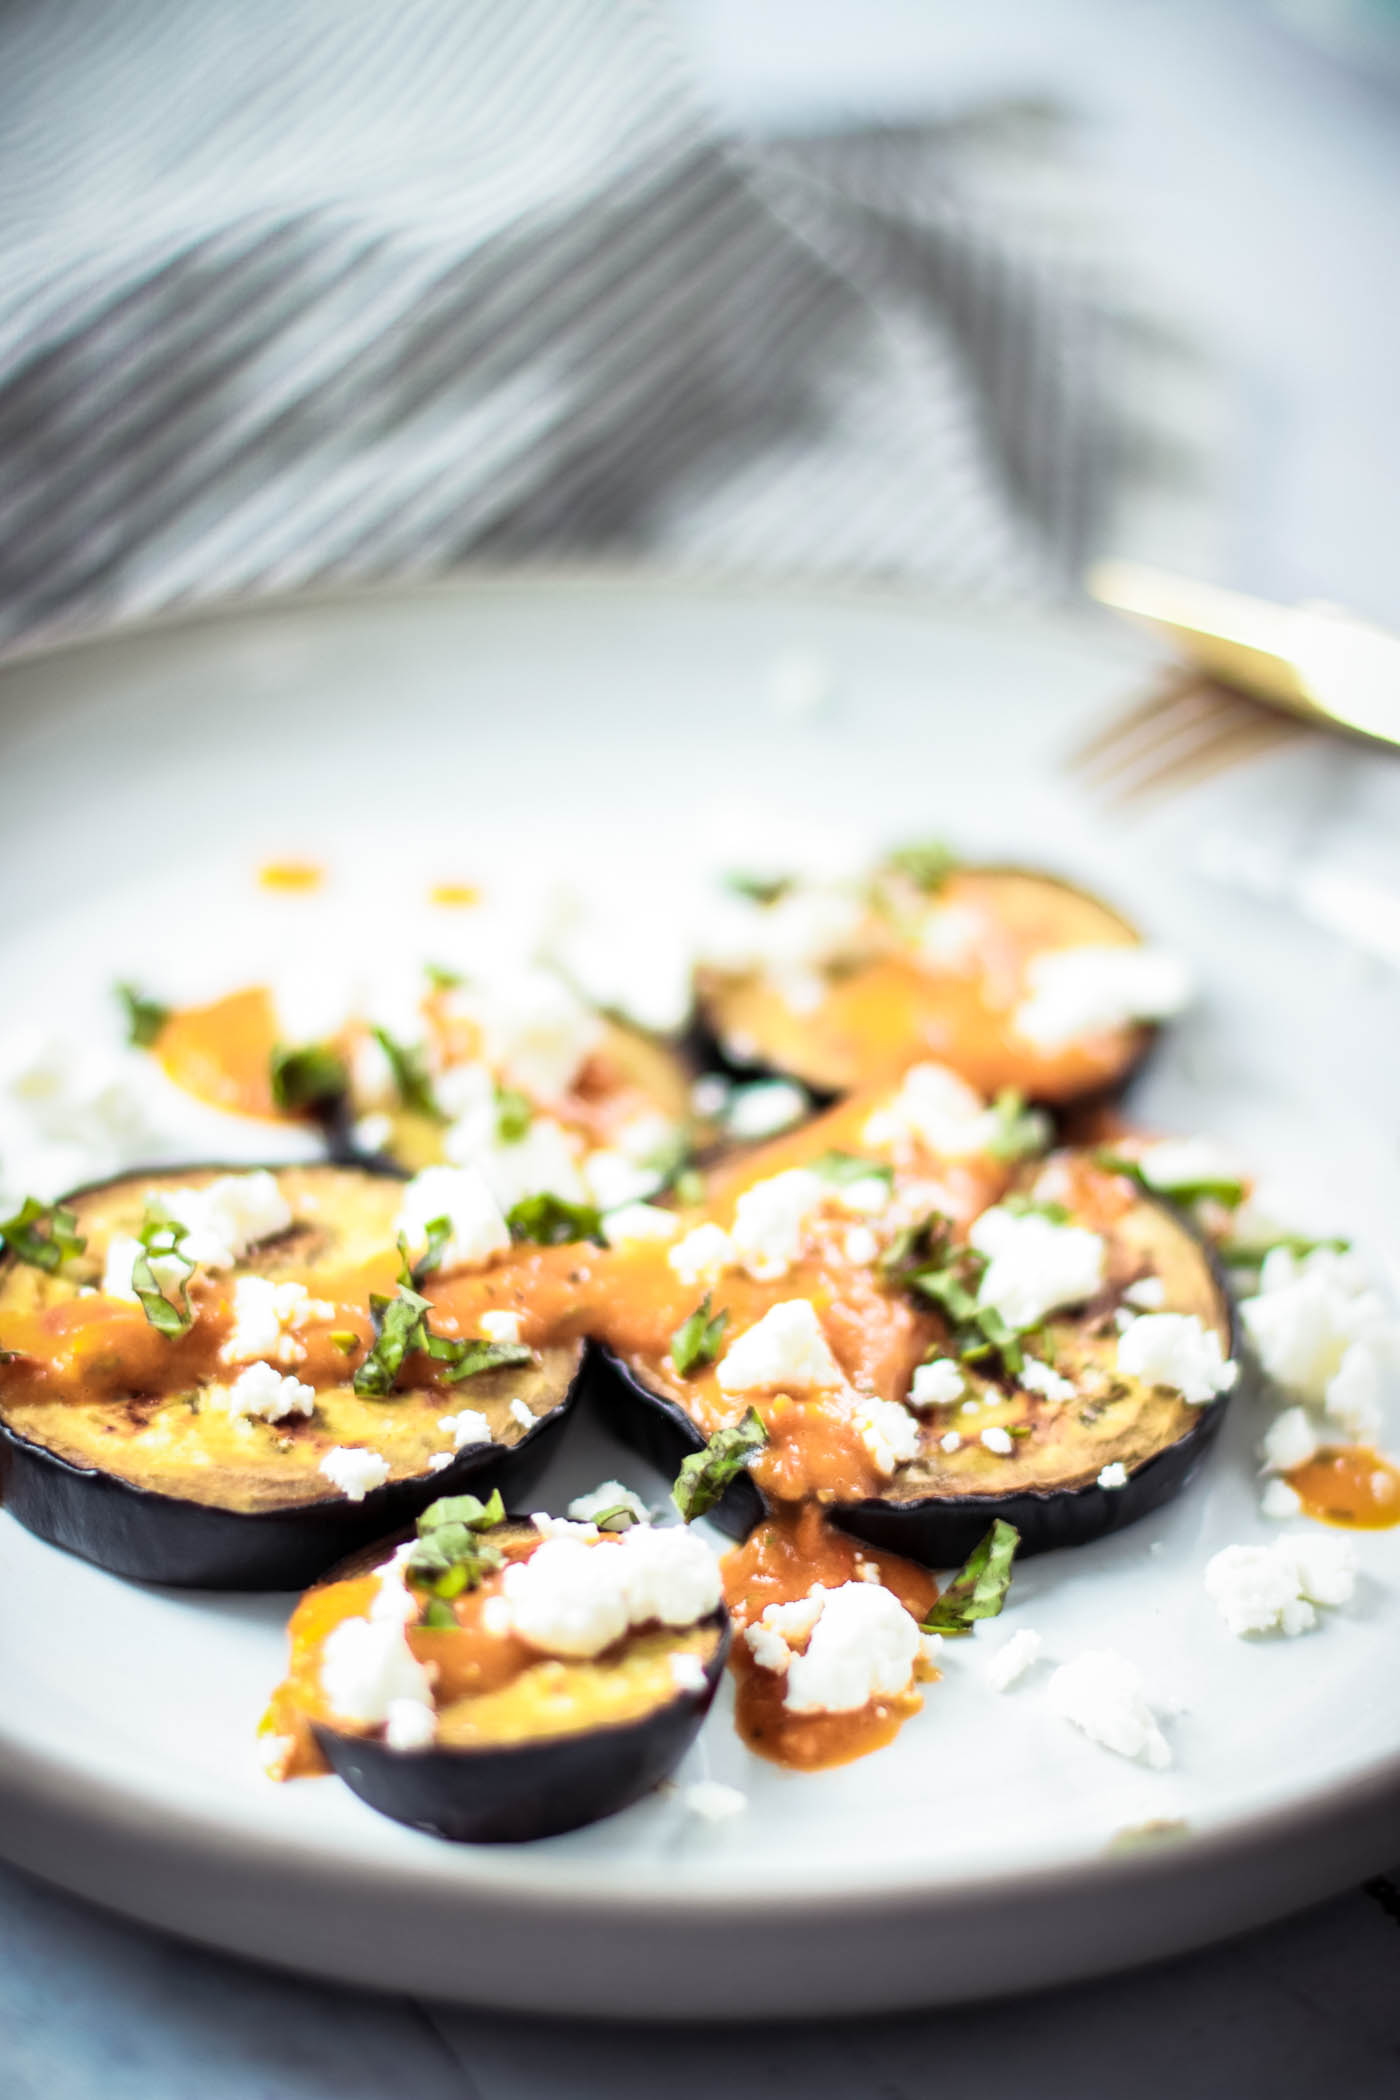 Low-carb lunch: Grilled Eggplant - Gegrillte Aubergine 5